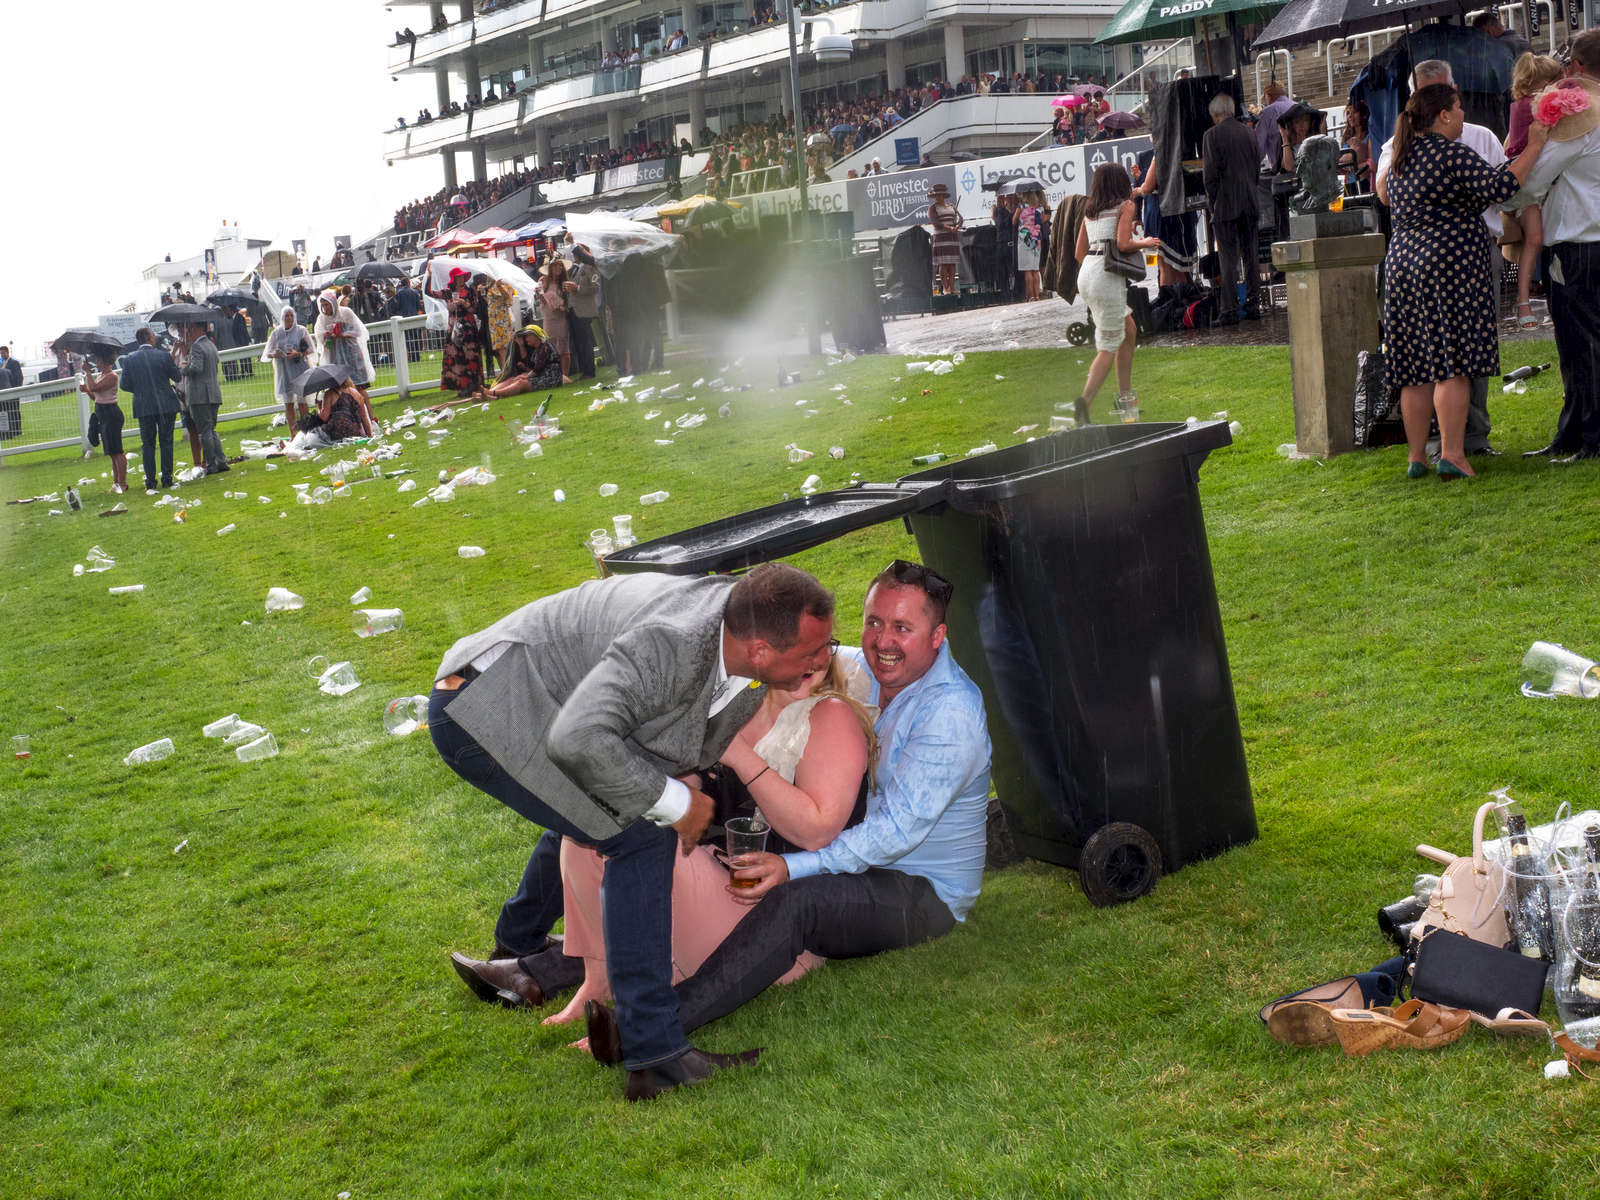 Visitor to Epsom take evasive action during a downpour.Ladies' Day is traditionally held on the first Friday of June, a multitude of ladies and gents head to Epsom Downs Racecourse to experience a day full of high octane racing, music, glamour and fashion.